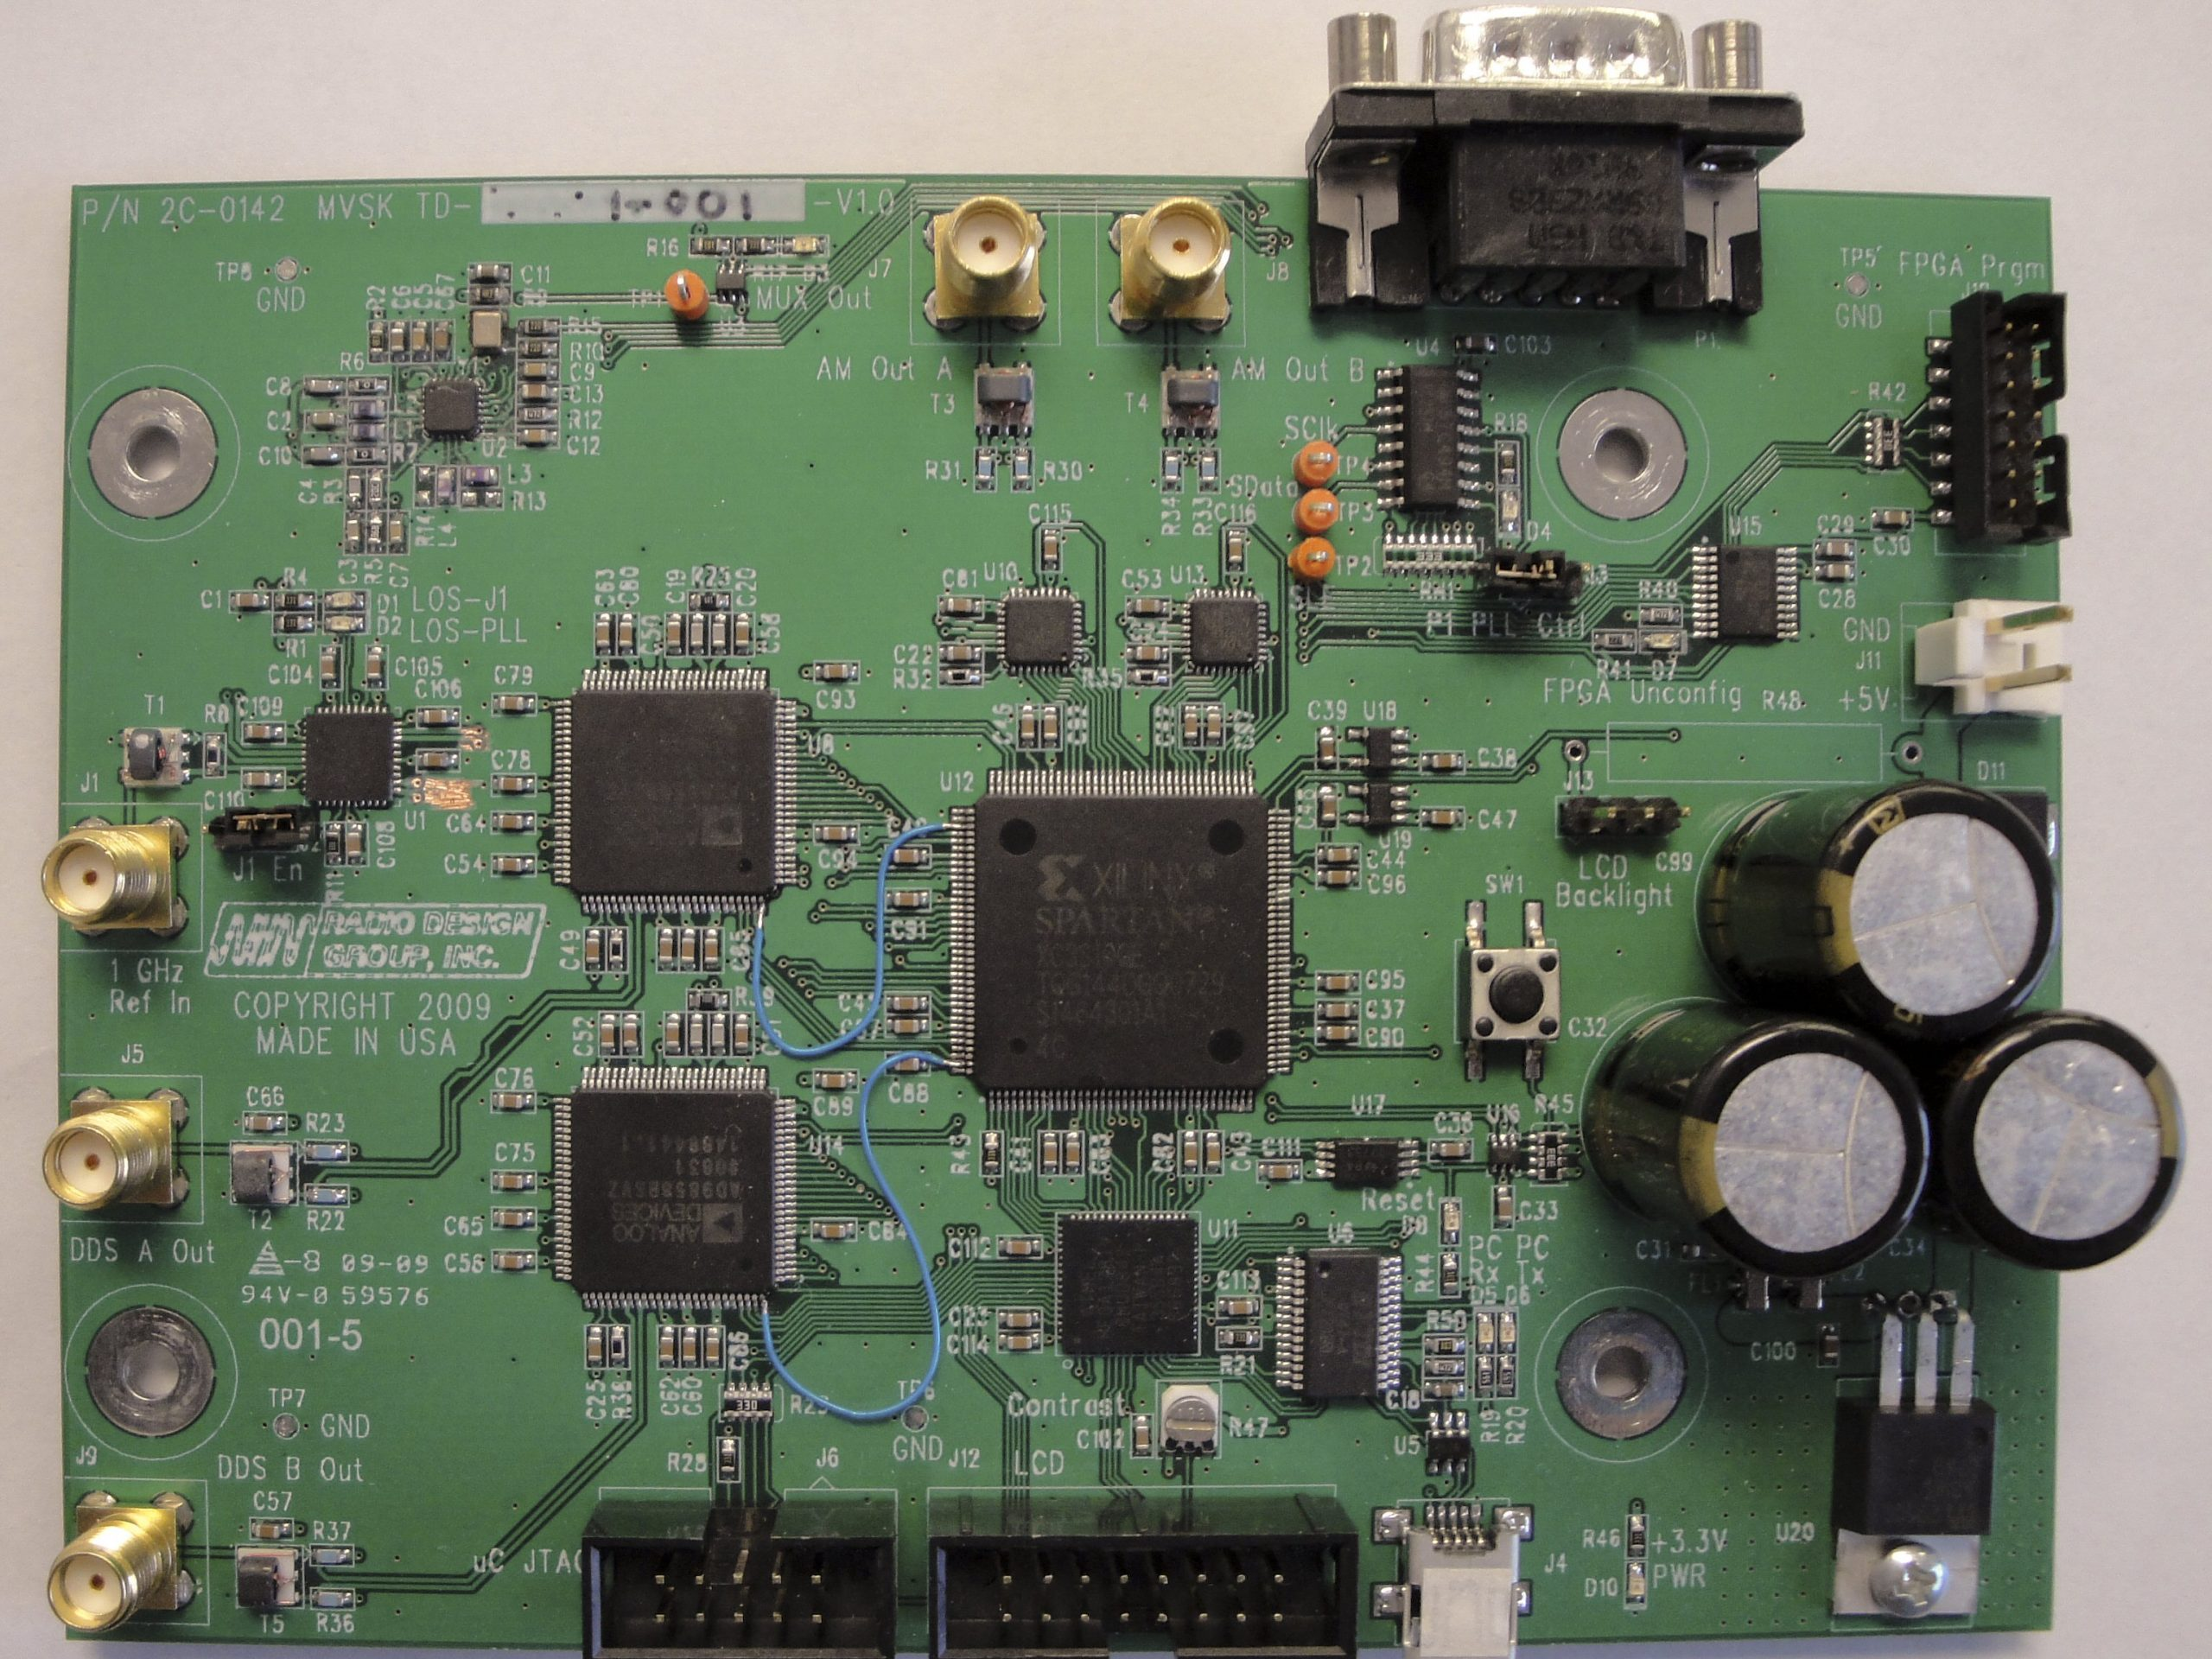 Advanced DDS MVSK test board